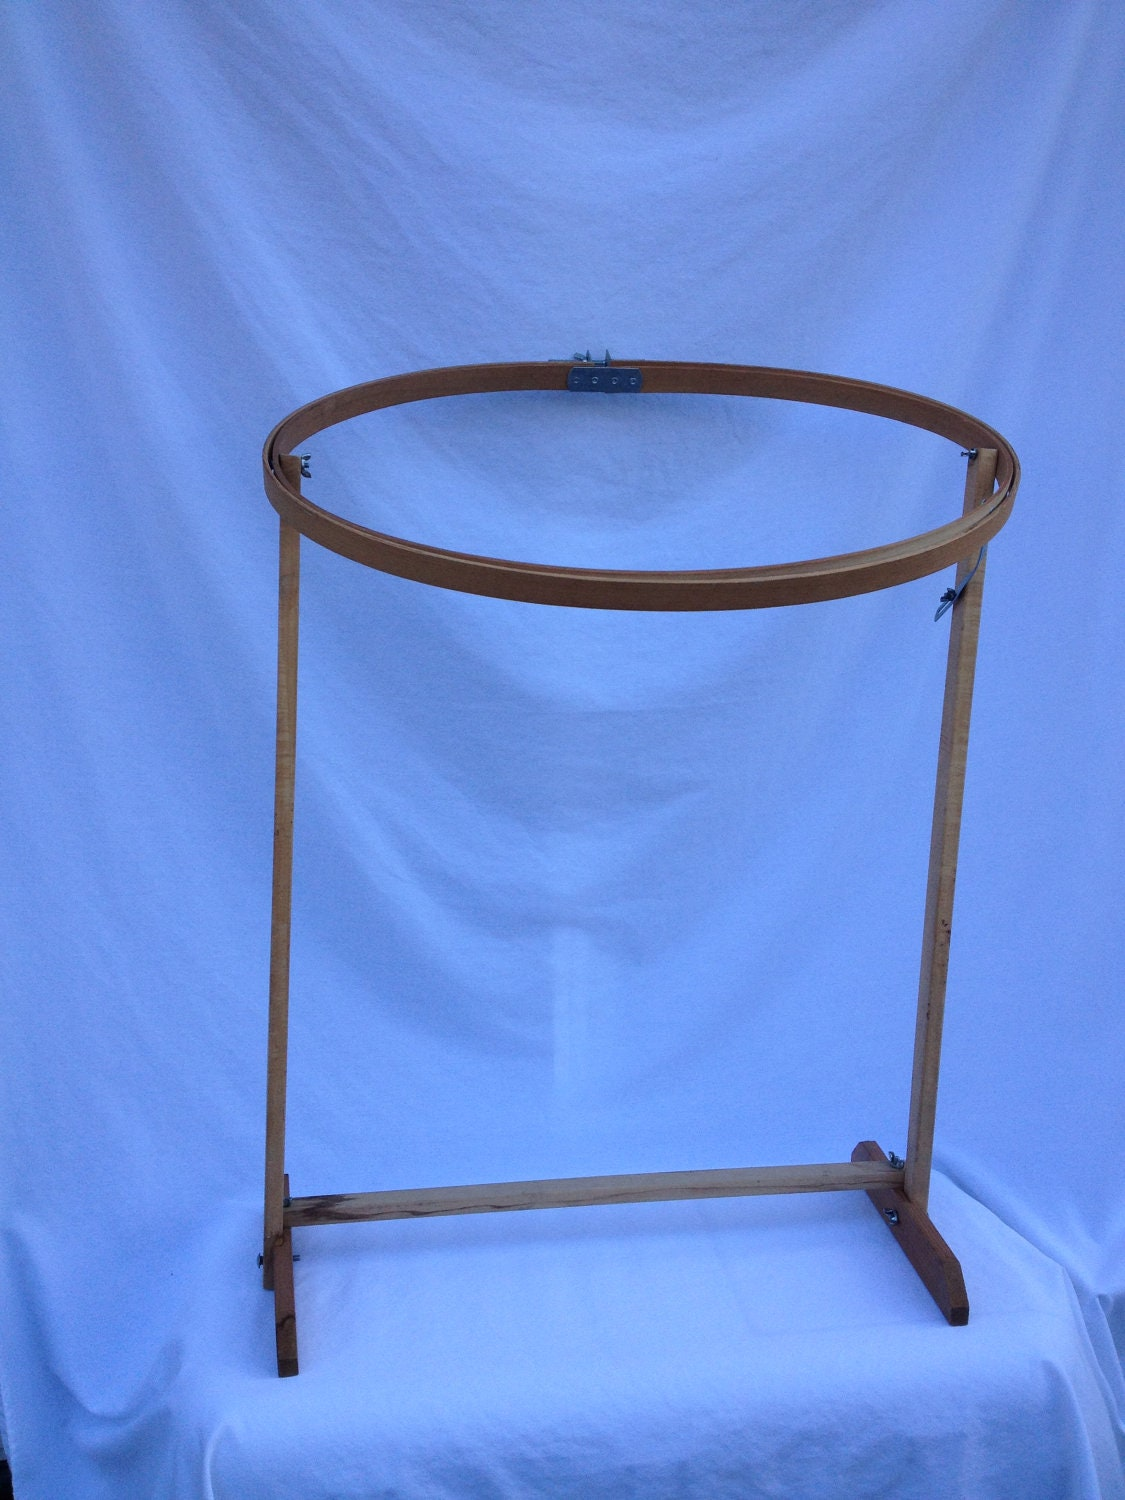 Vintage oval quilting hoop with stand